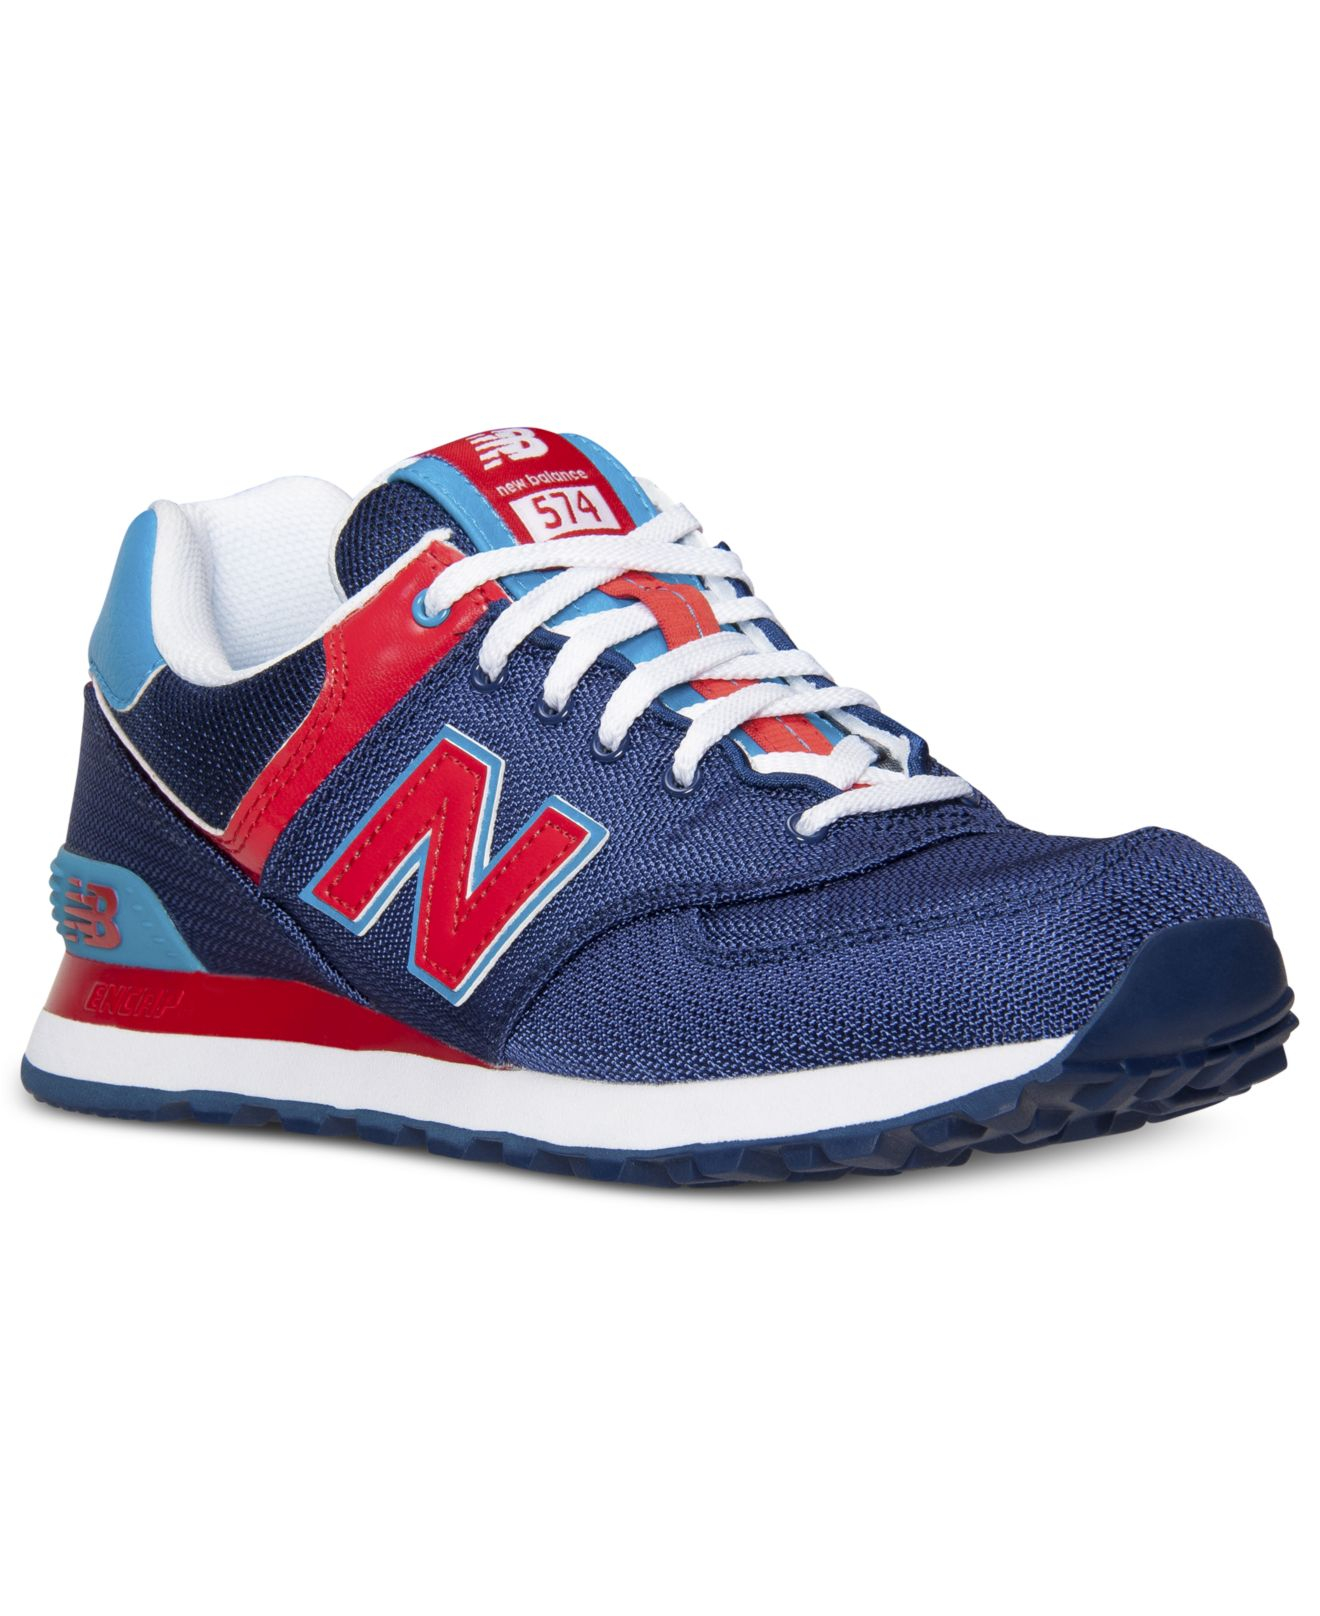 New Balance Men Casual Suede Slip On Shoes